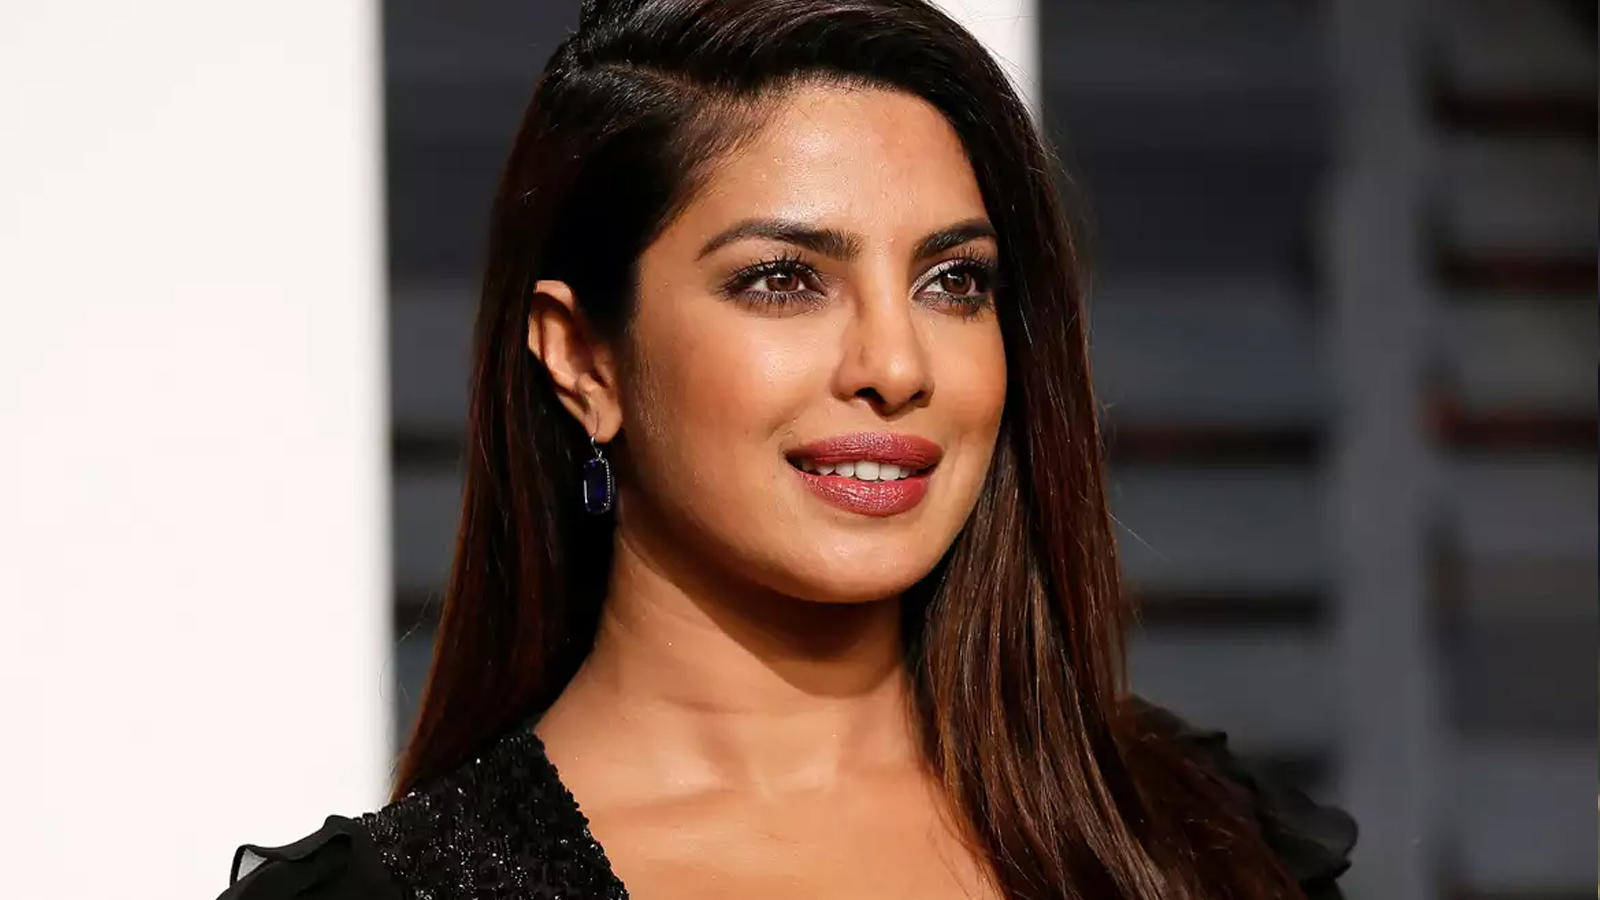 priyanka-chopra-jonas-says-facing-racist-bullying-while-studying-in-an-american-high-school-affected-her-adversely